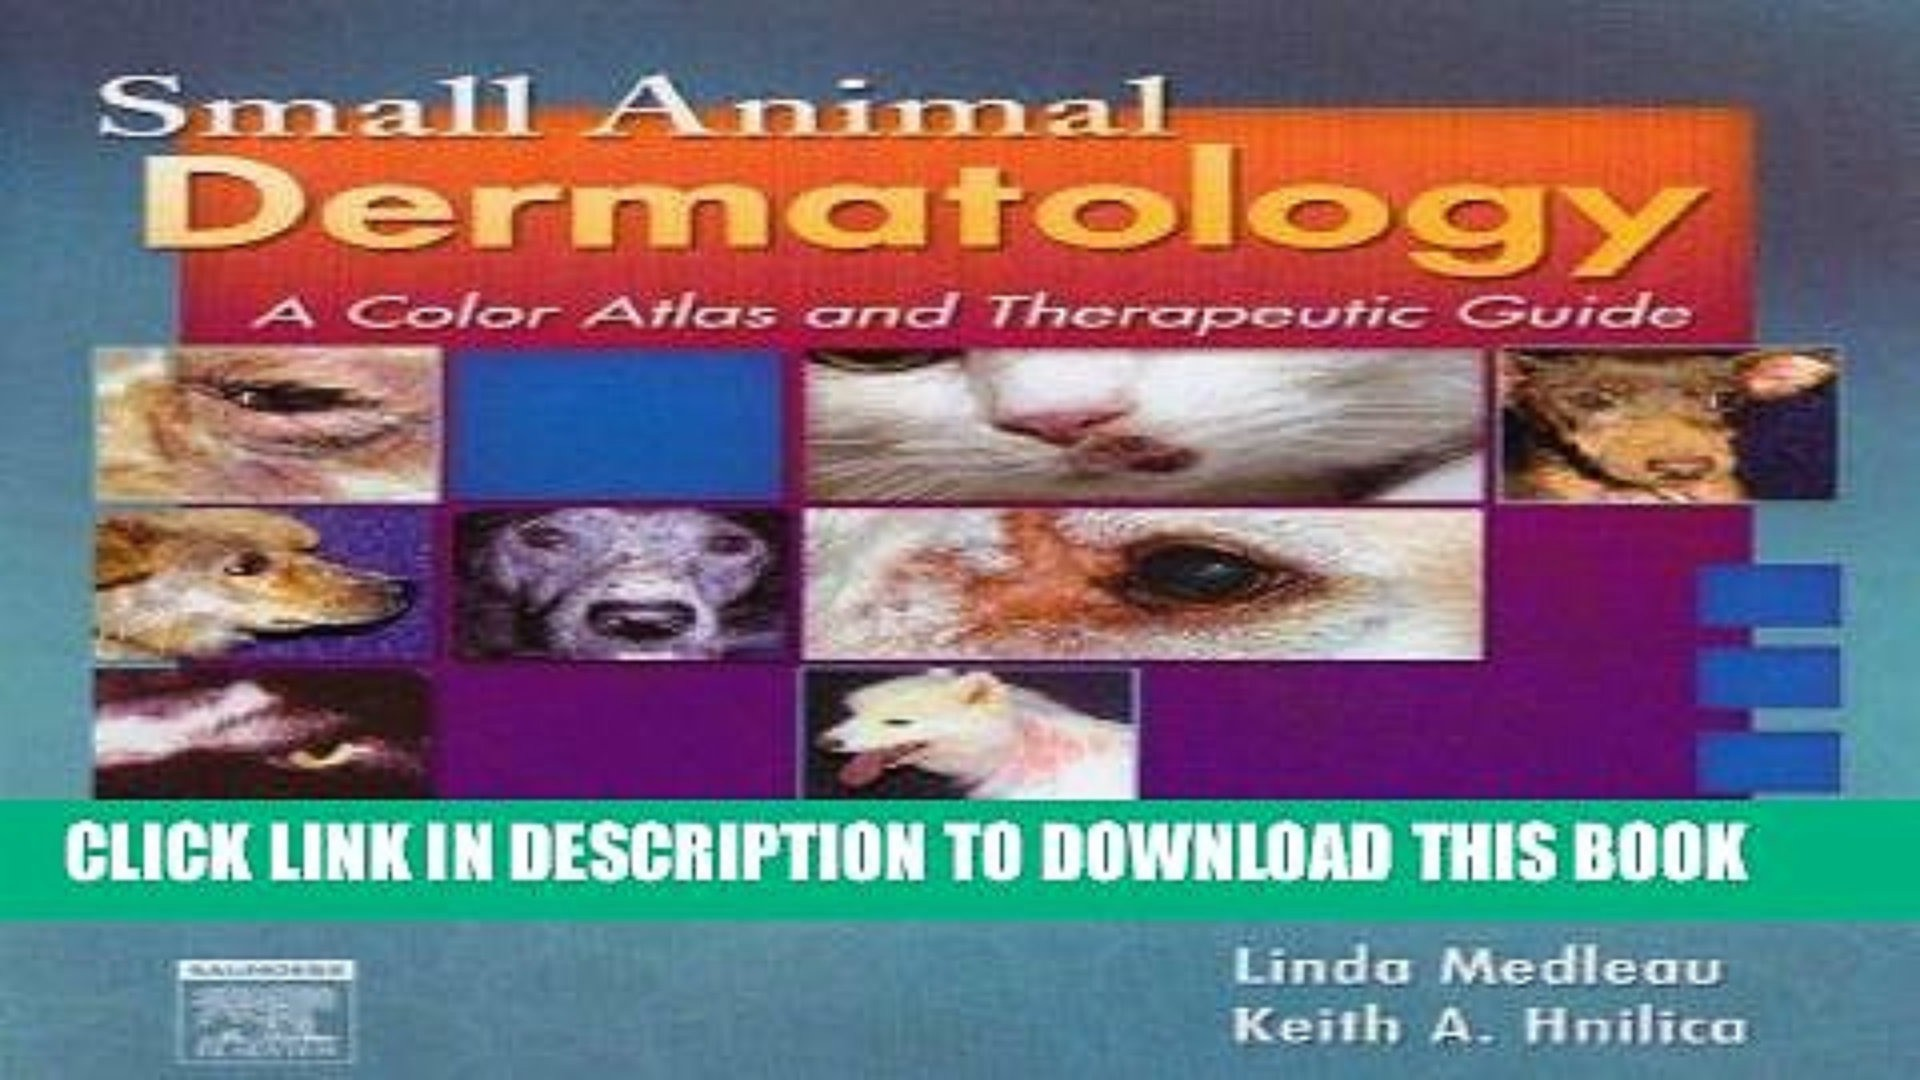 small-animal-dermatology-a-color-atlas-and-therapeutic-guide-pdf-of-small-animal-dermatology-a-color-atlas-and-therapeutic-guide-pdf Small Animal Dermatology A Color atlas and therapeutic Guide Pdf Animal